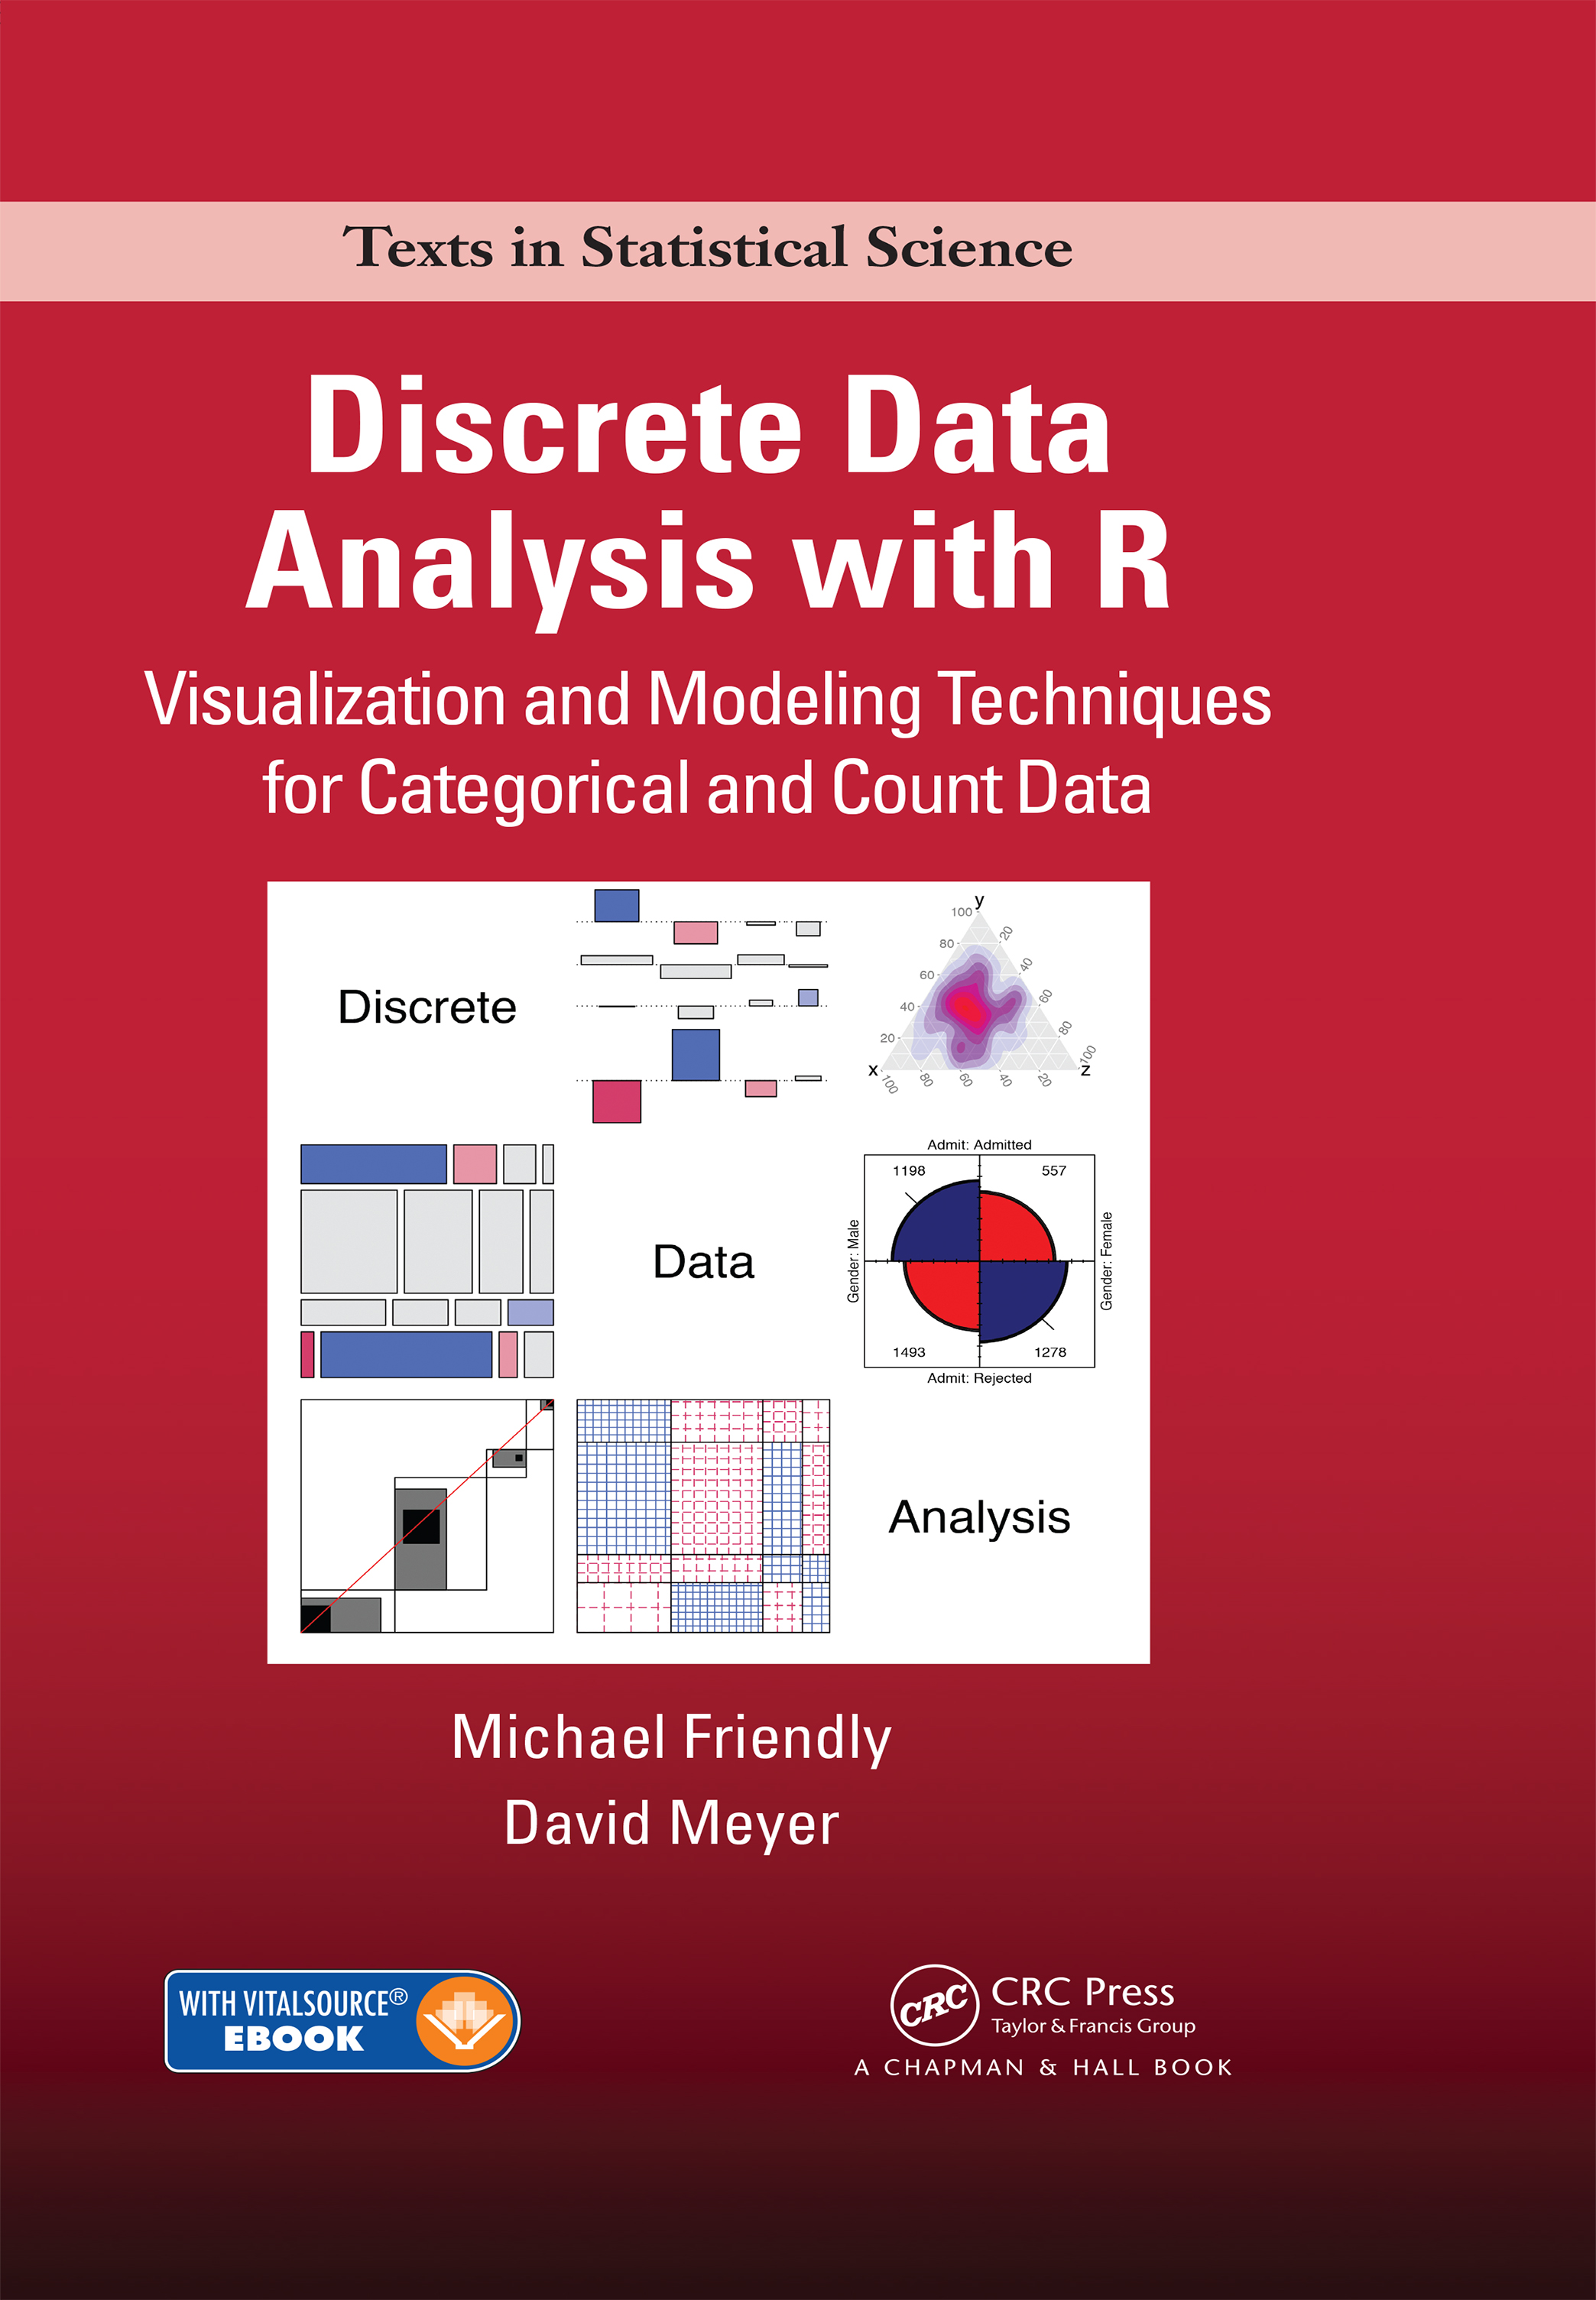 Discrete Data Analysis with R: Visualization and Modeling Techniques for Categorical and Count Data book cover